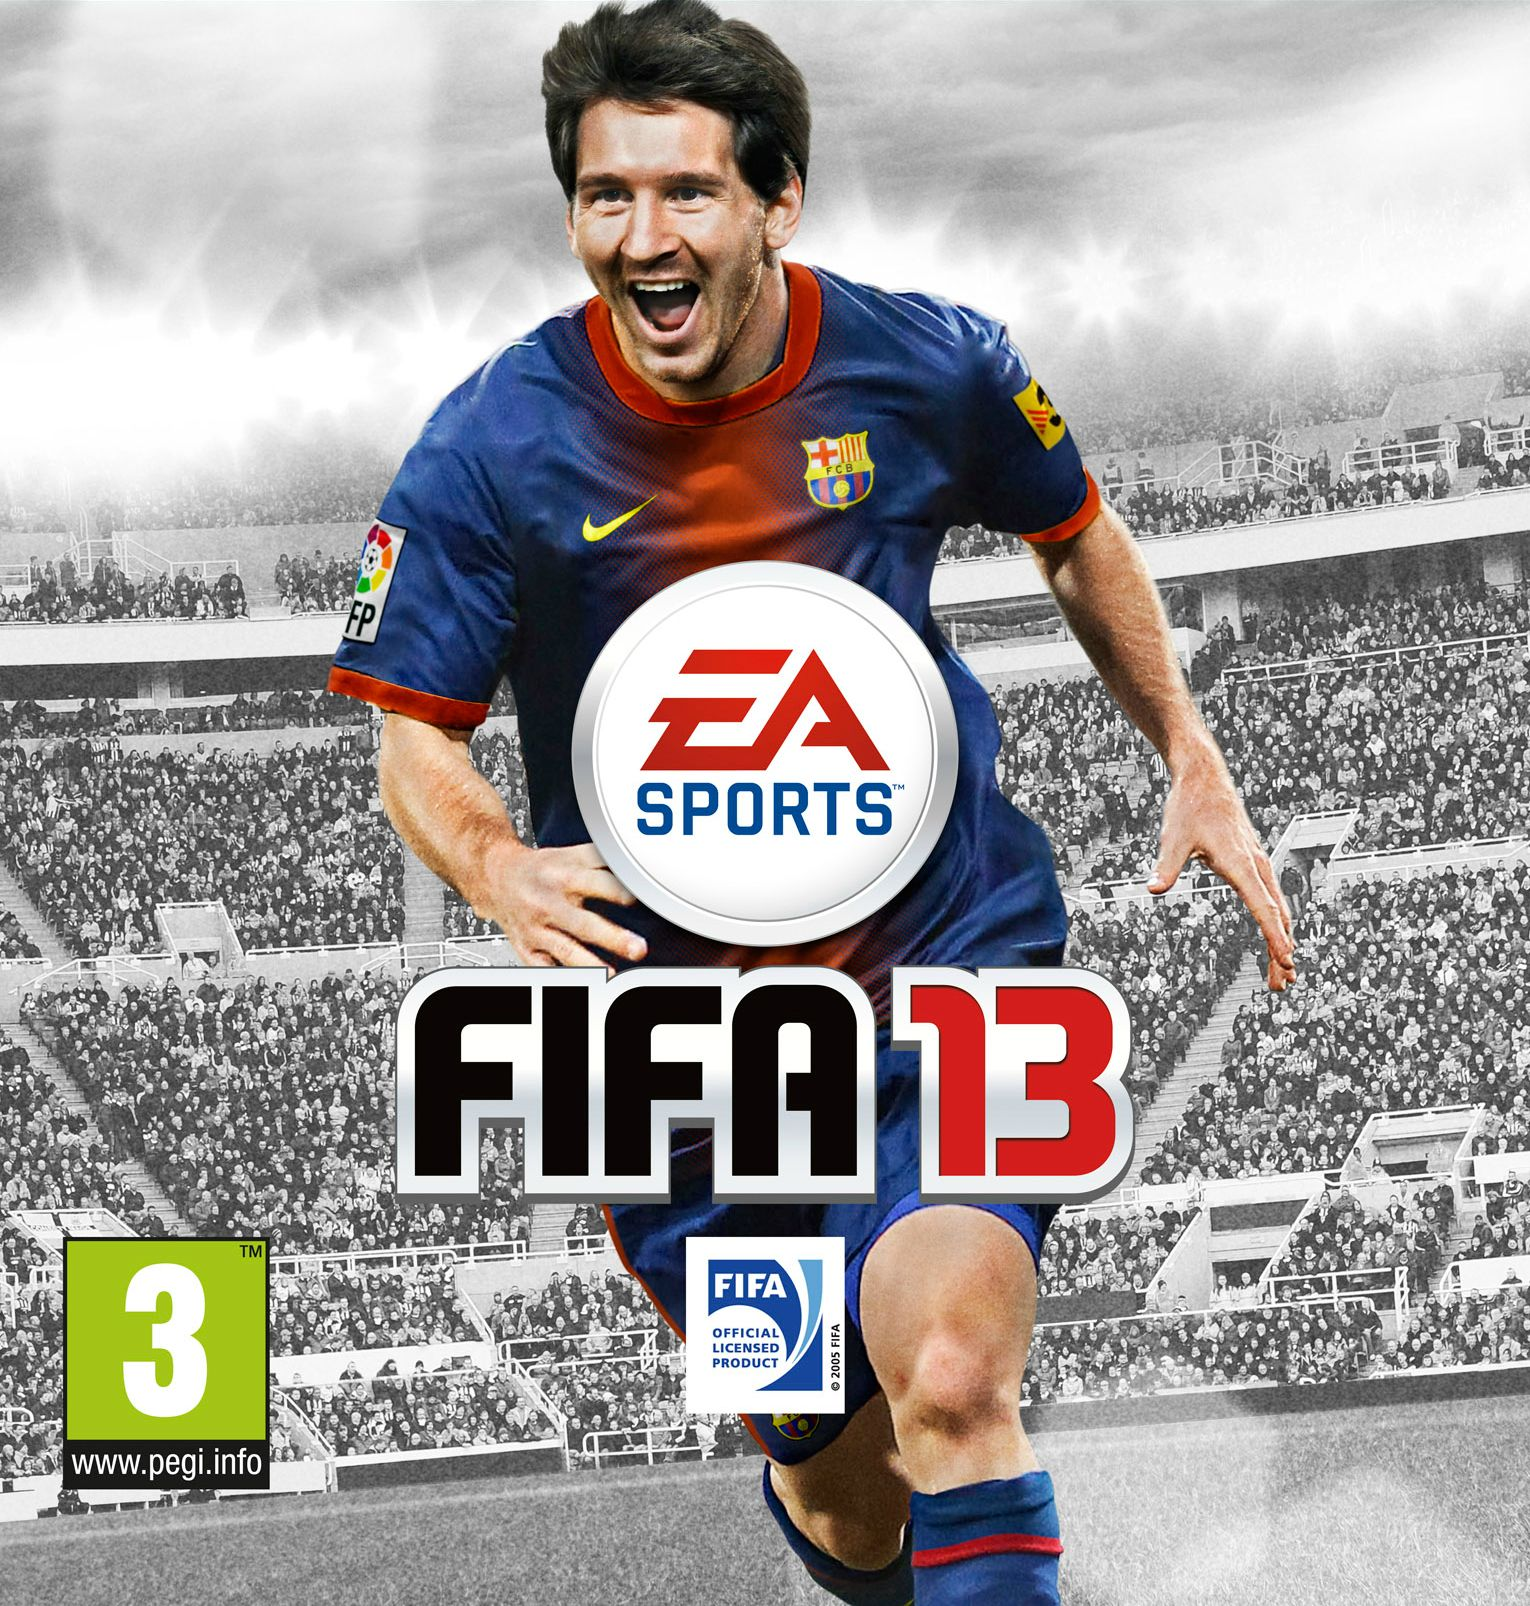 the fifa 13 pack cover is taking shape la jaquette de fifa 13 prend